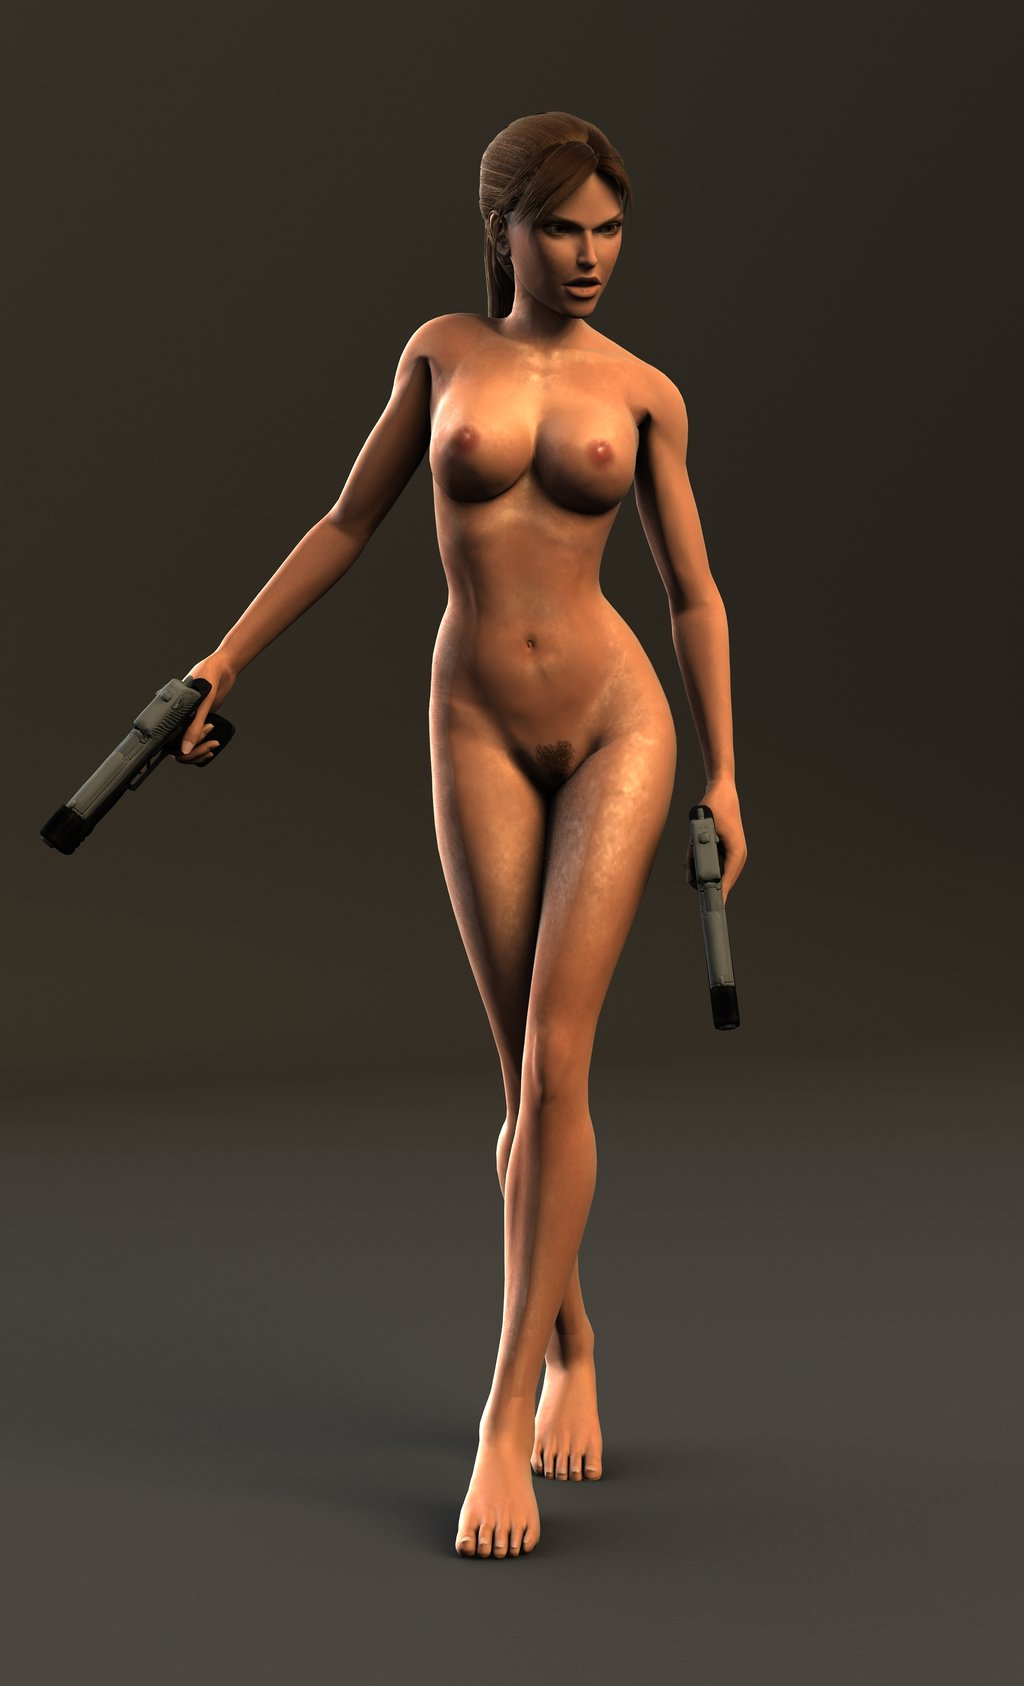 Tomb raider legend nude mod part erotic clips